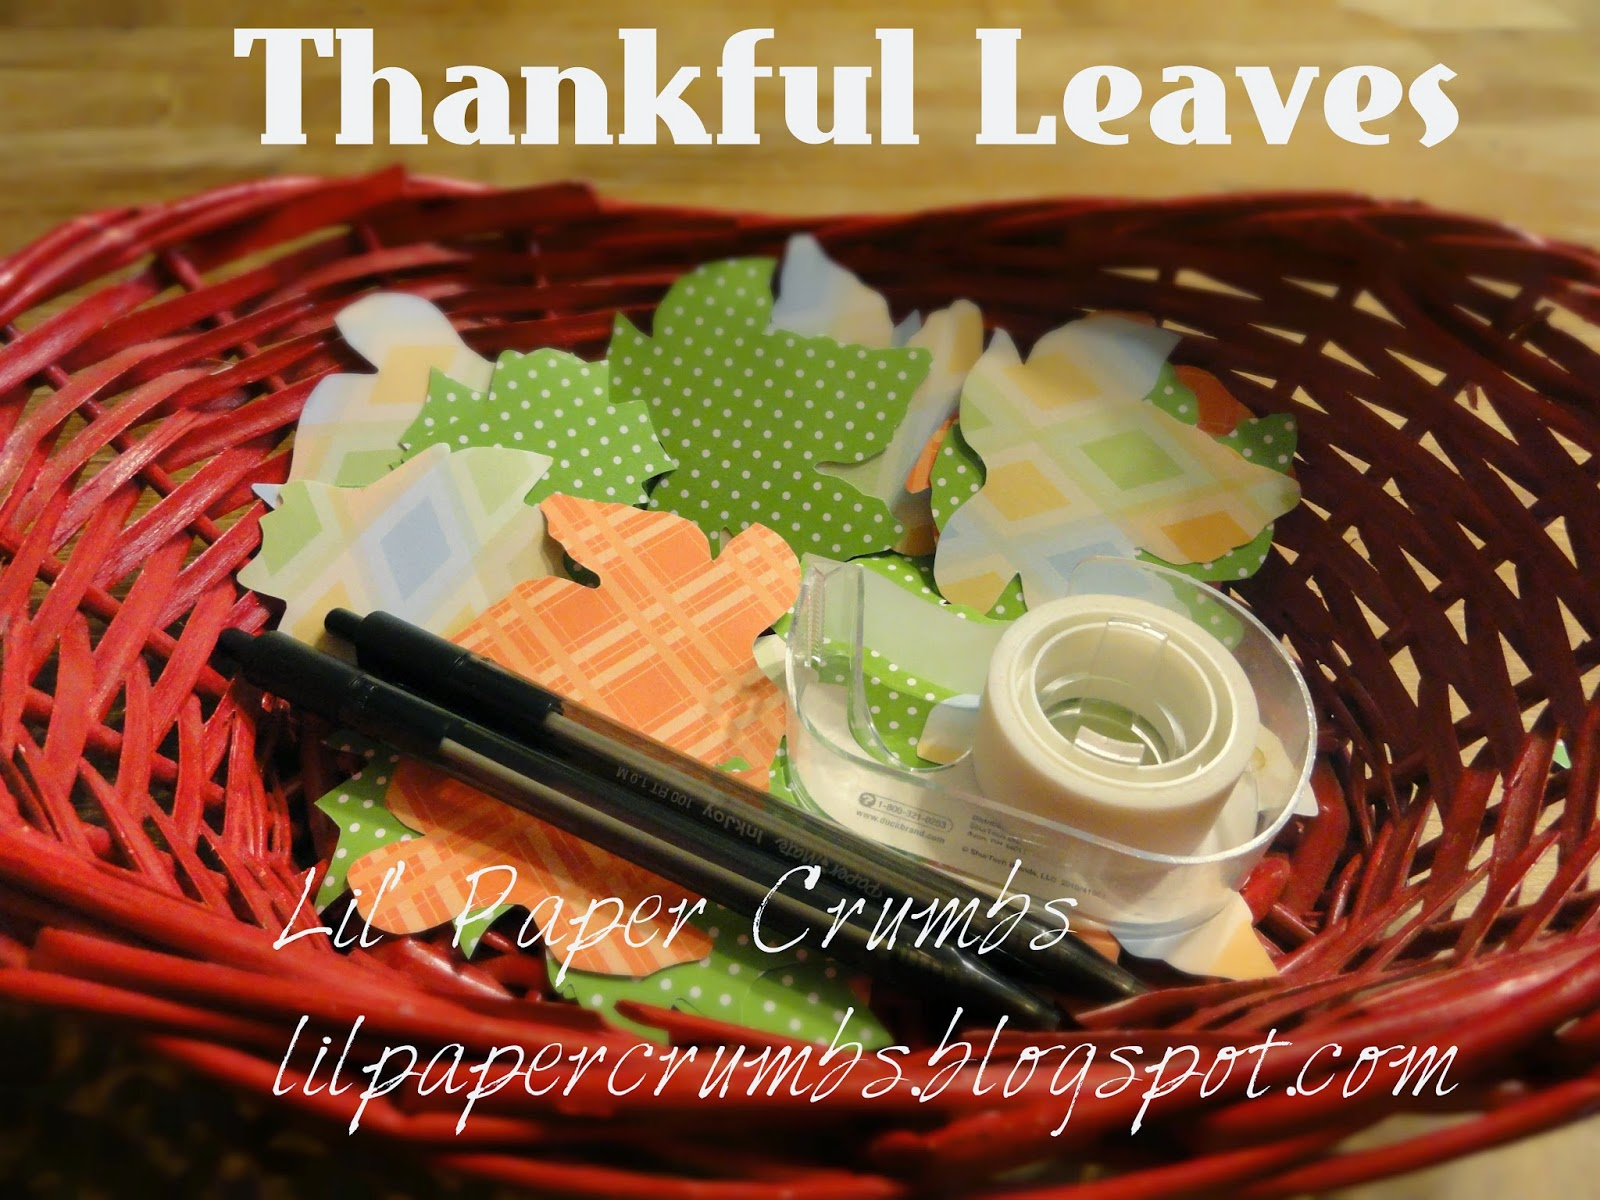 Thankful Leaves @lilpapercrumbs.blogspot.com Free printable!